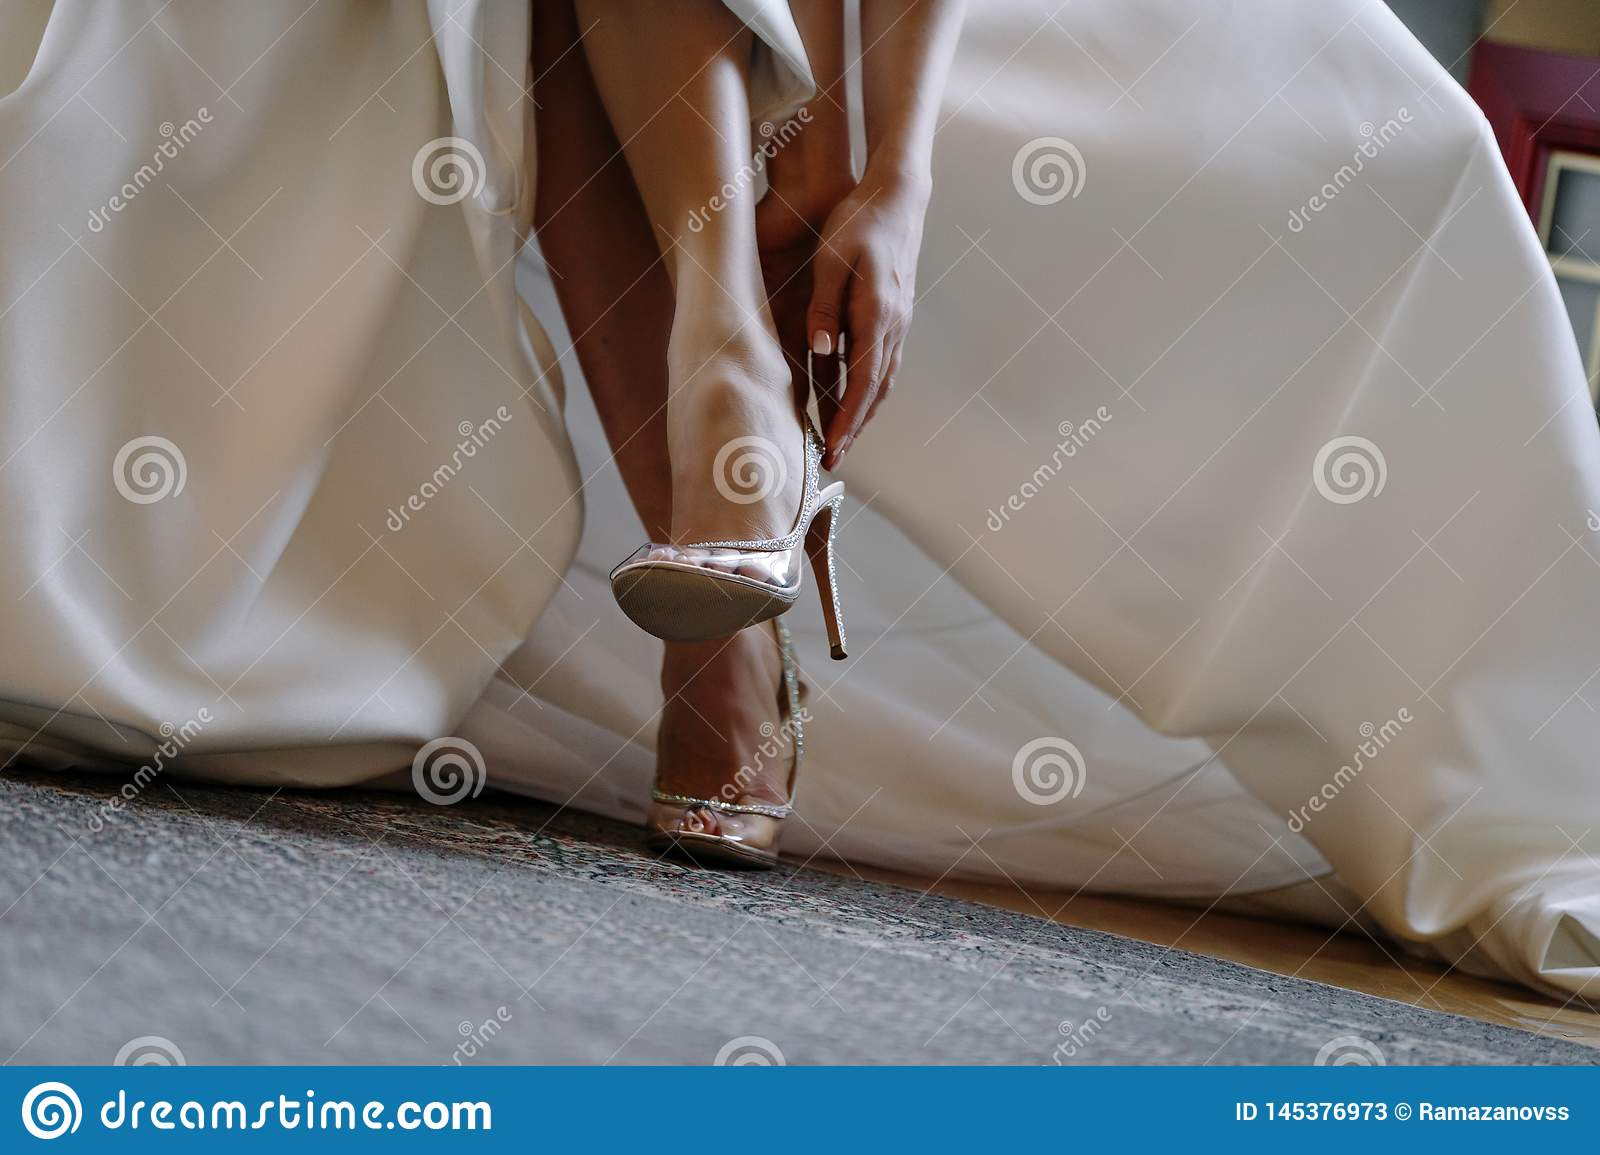 Legs of the bride in elegant shoes